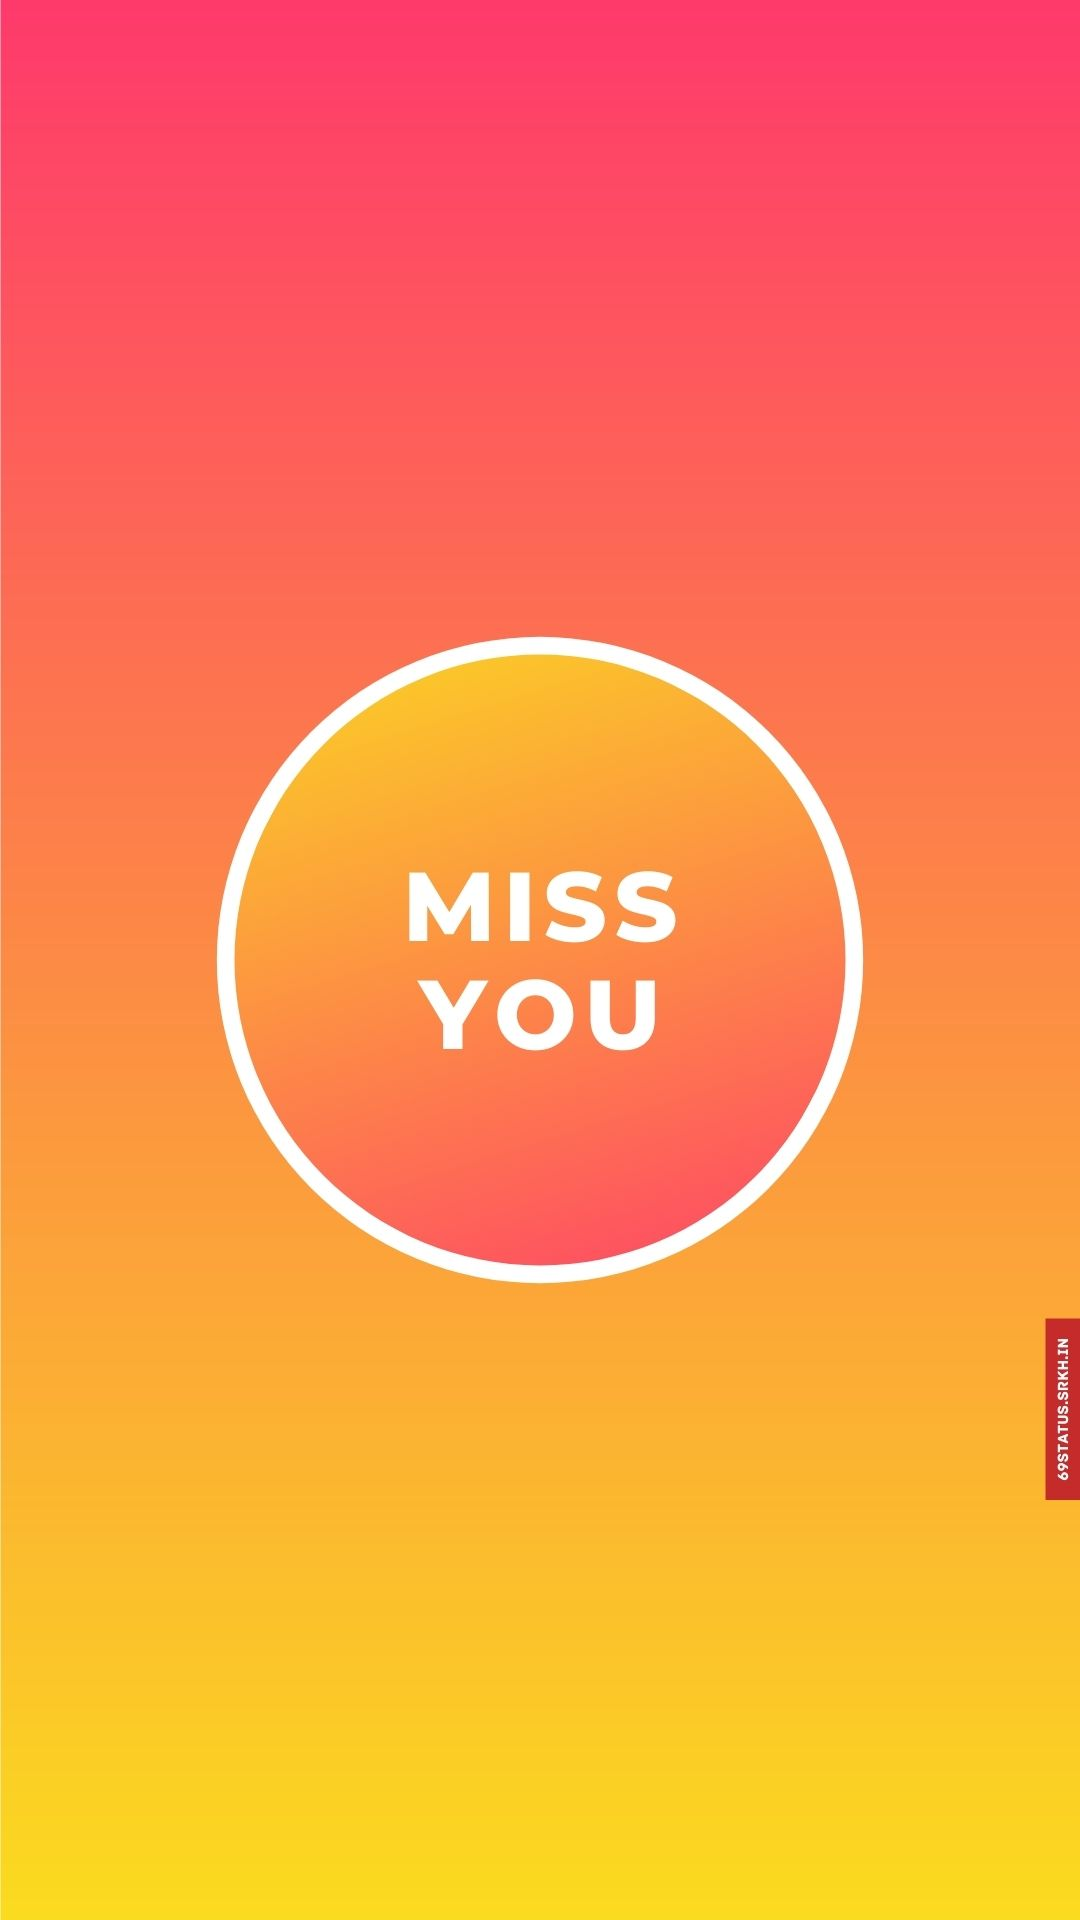 Miss you images wallpaper in full hd full HD free download.